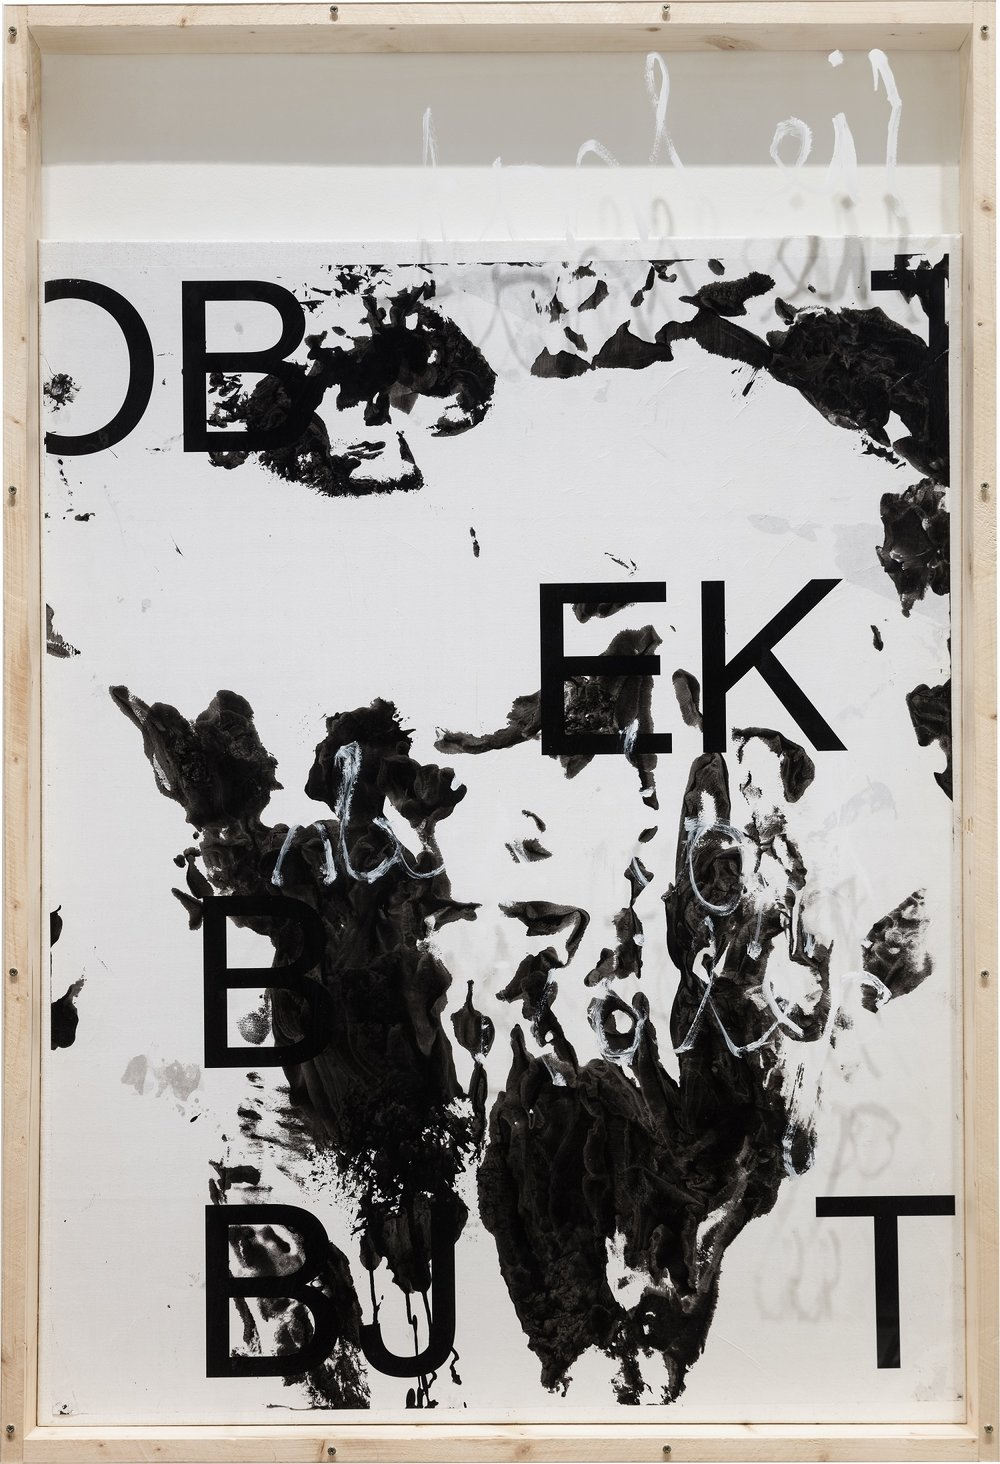 Senza titolo , 2015, inkjet-print on paper, acrylic, lacquer, wood, canvas, 146,5 x 99 cm, Courtesy the artist